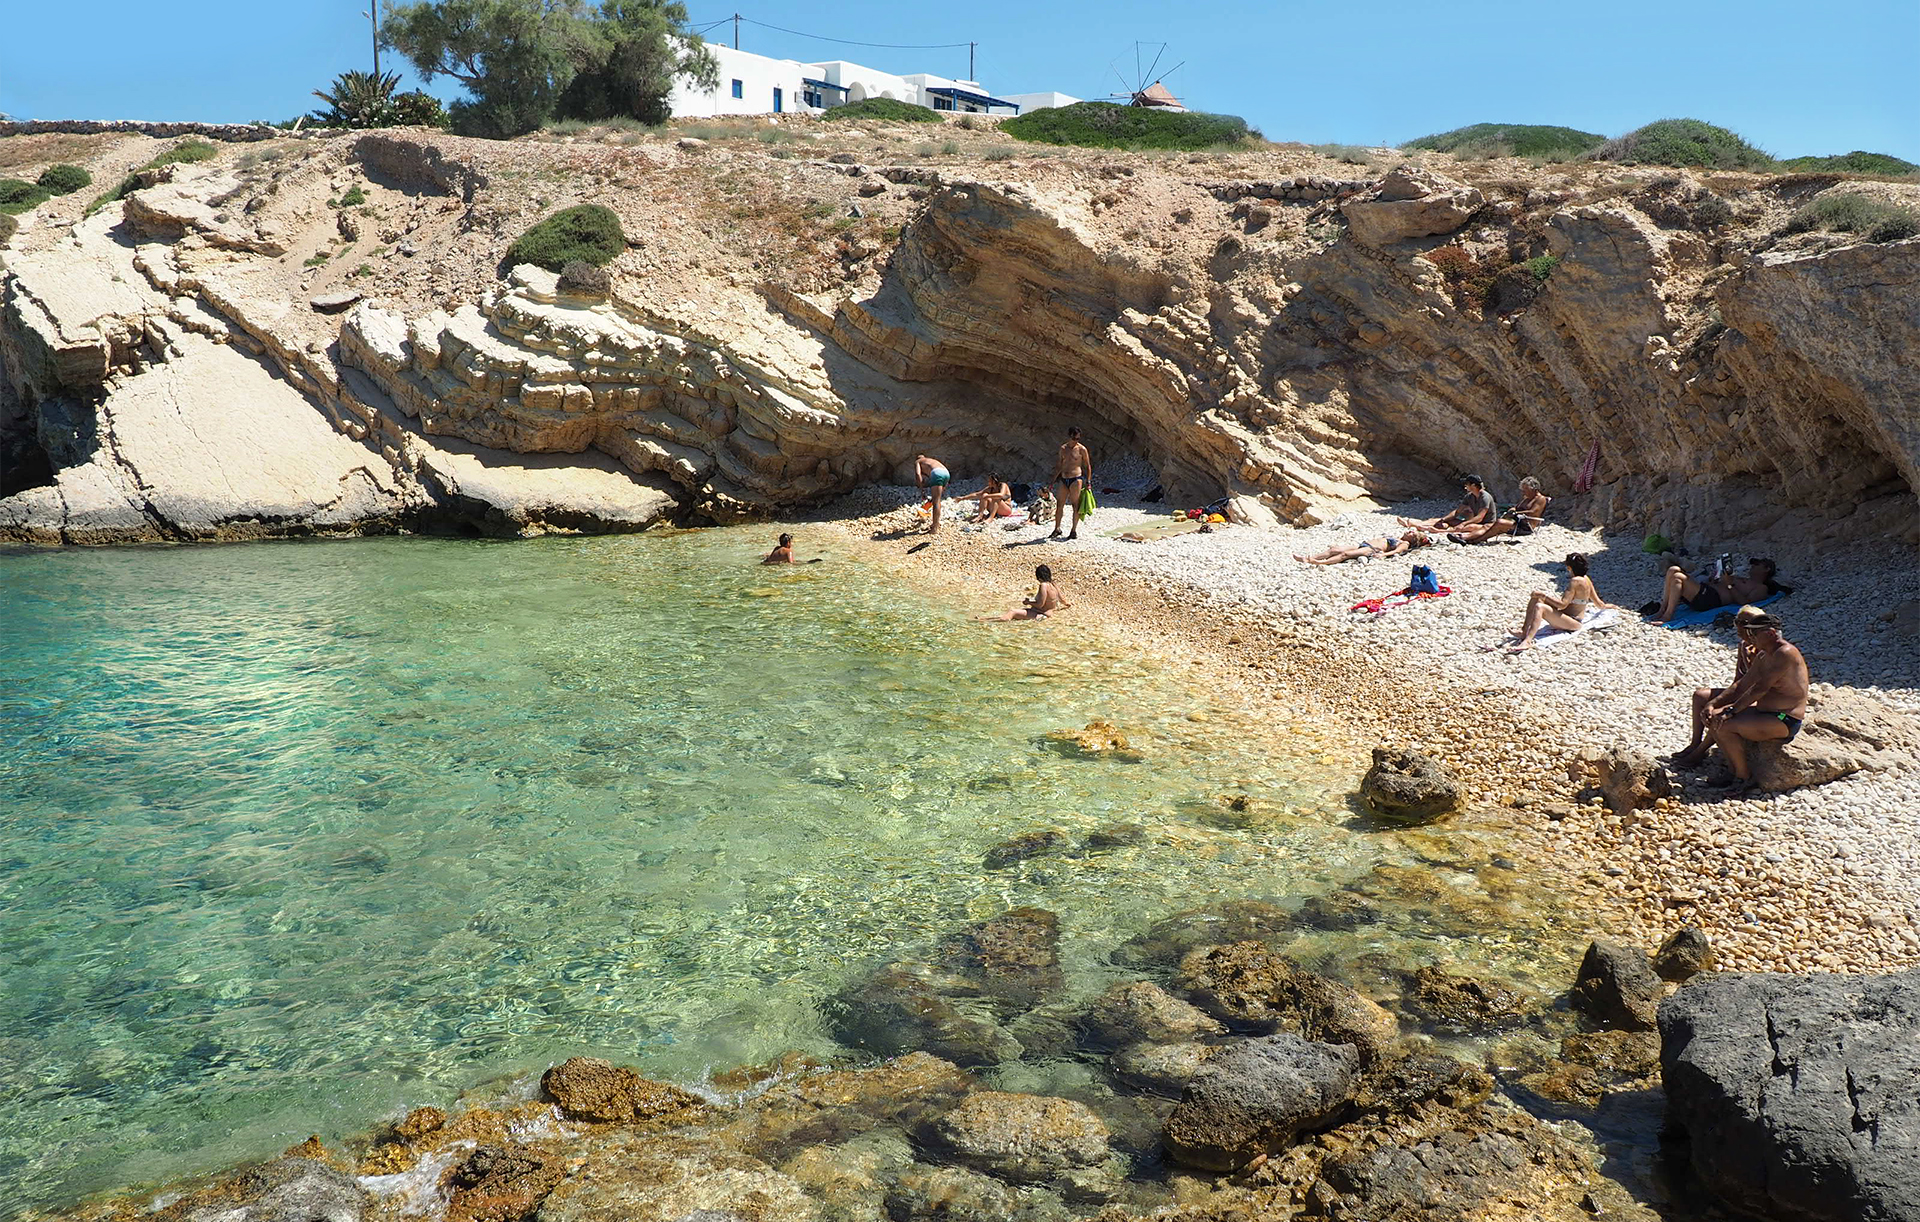 Greek Island destination - Koufonisia, so many beaches to discover below the cliff overhangs